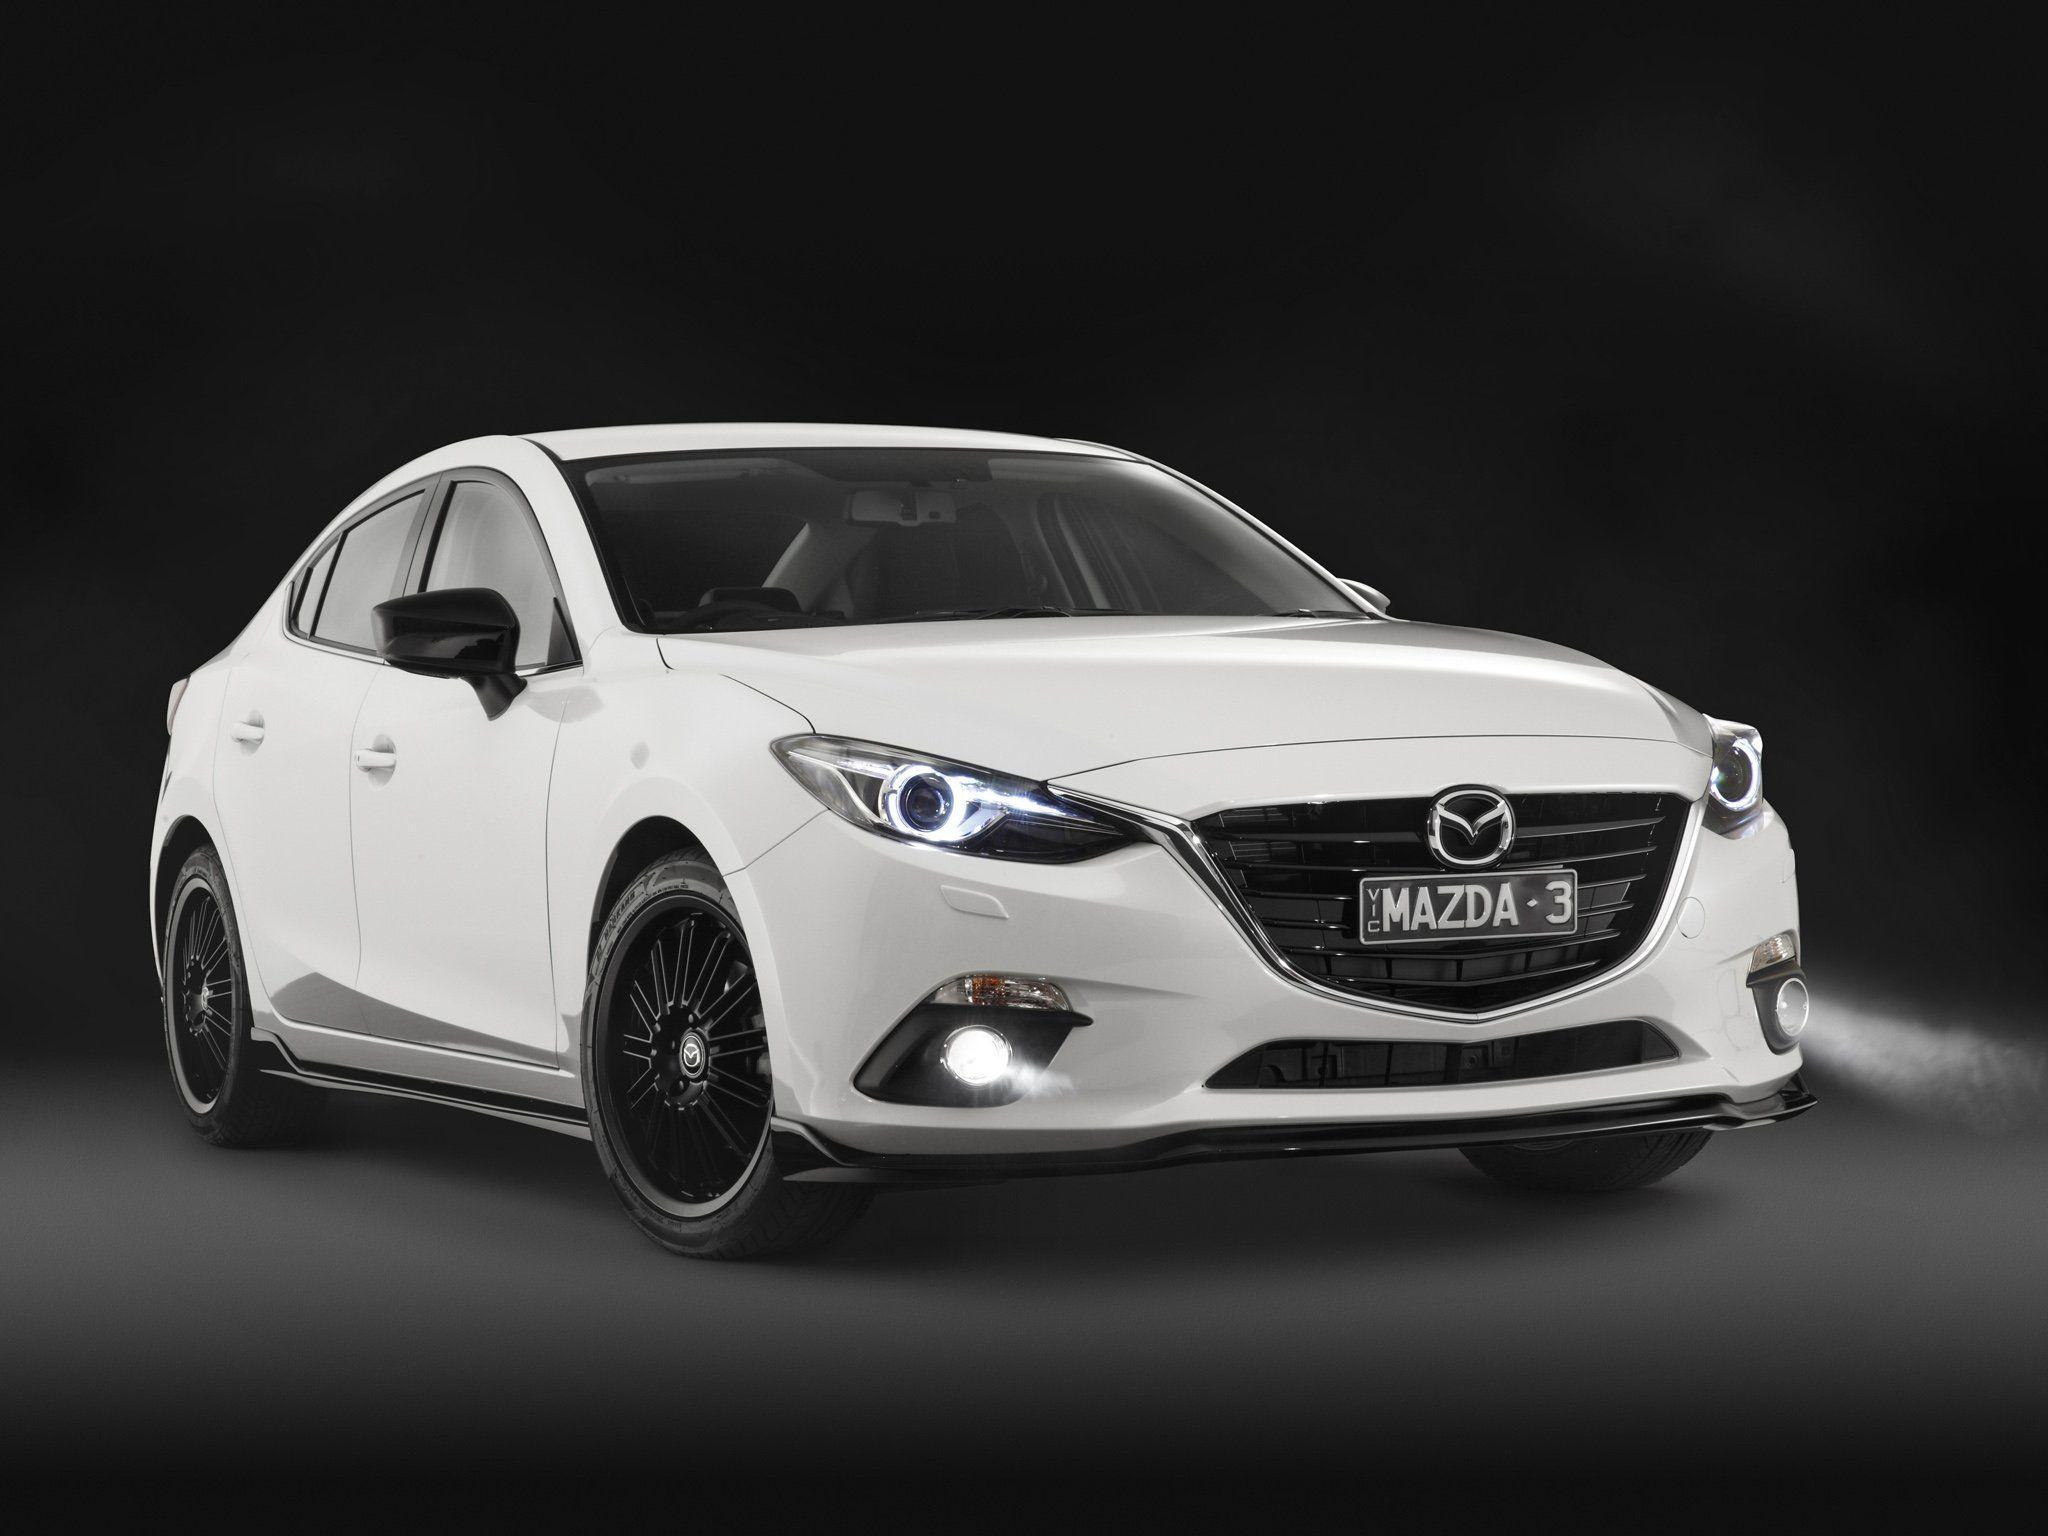 Mazda 3 Wallpapers, Mazda 3 Wallpapers for PC, HVGA 3:2, IPW.P.682